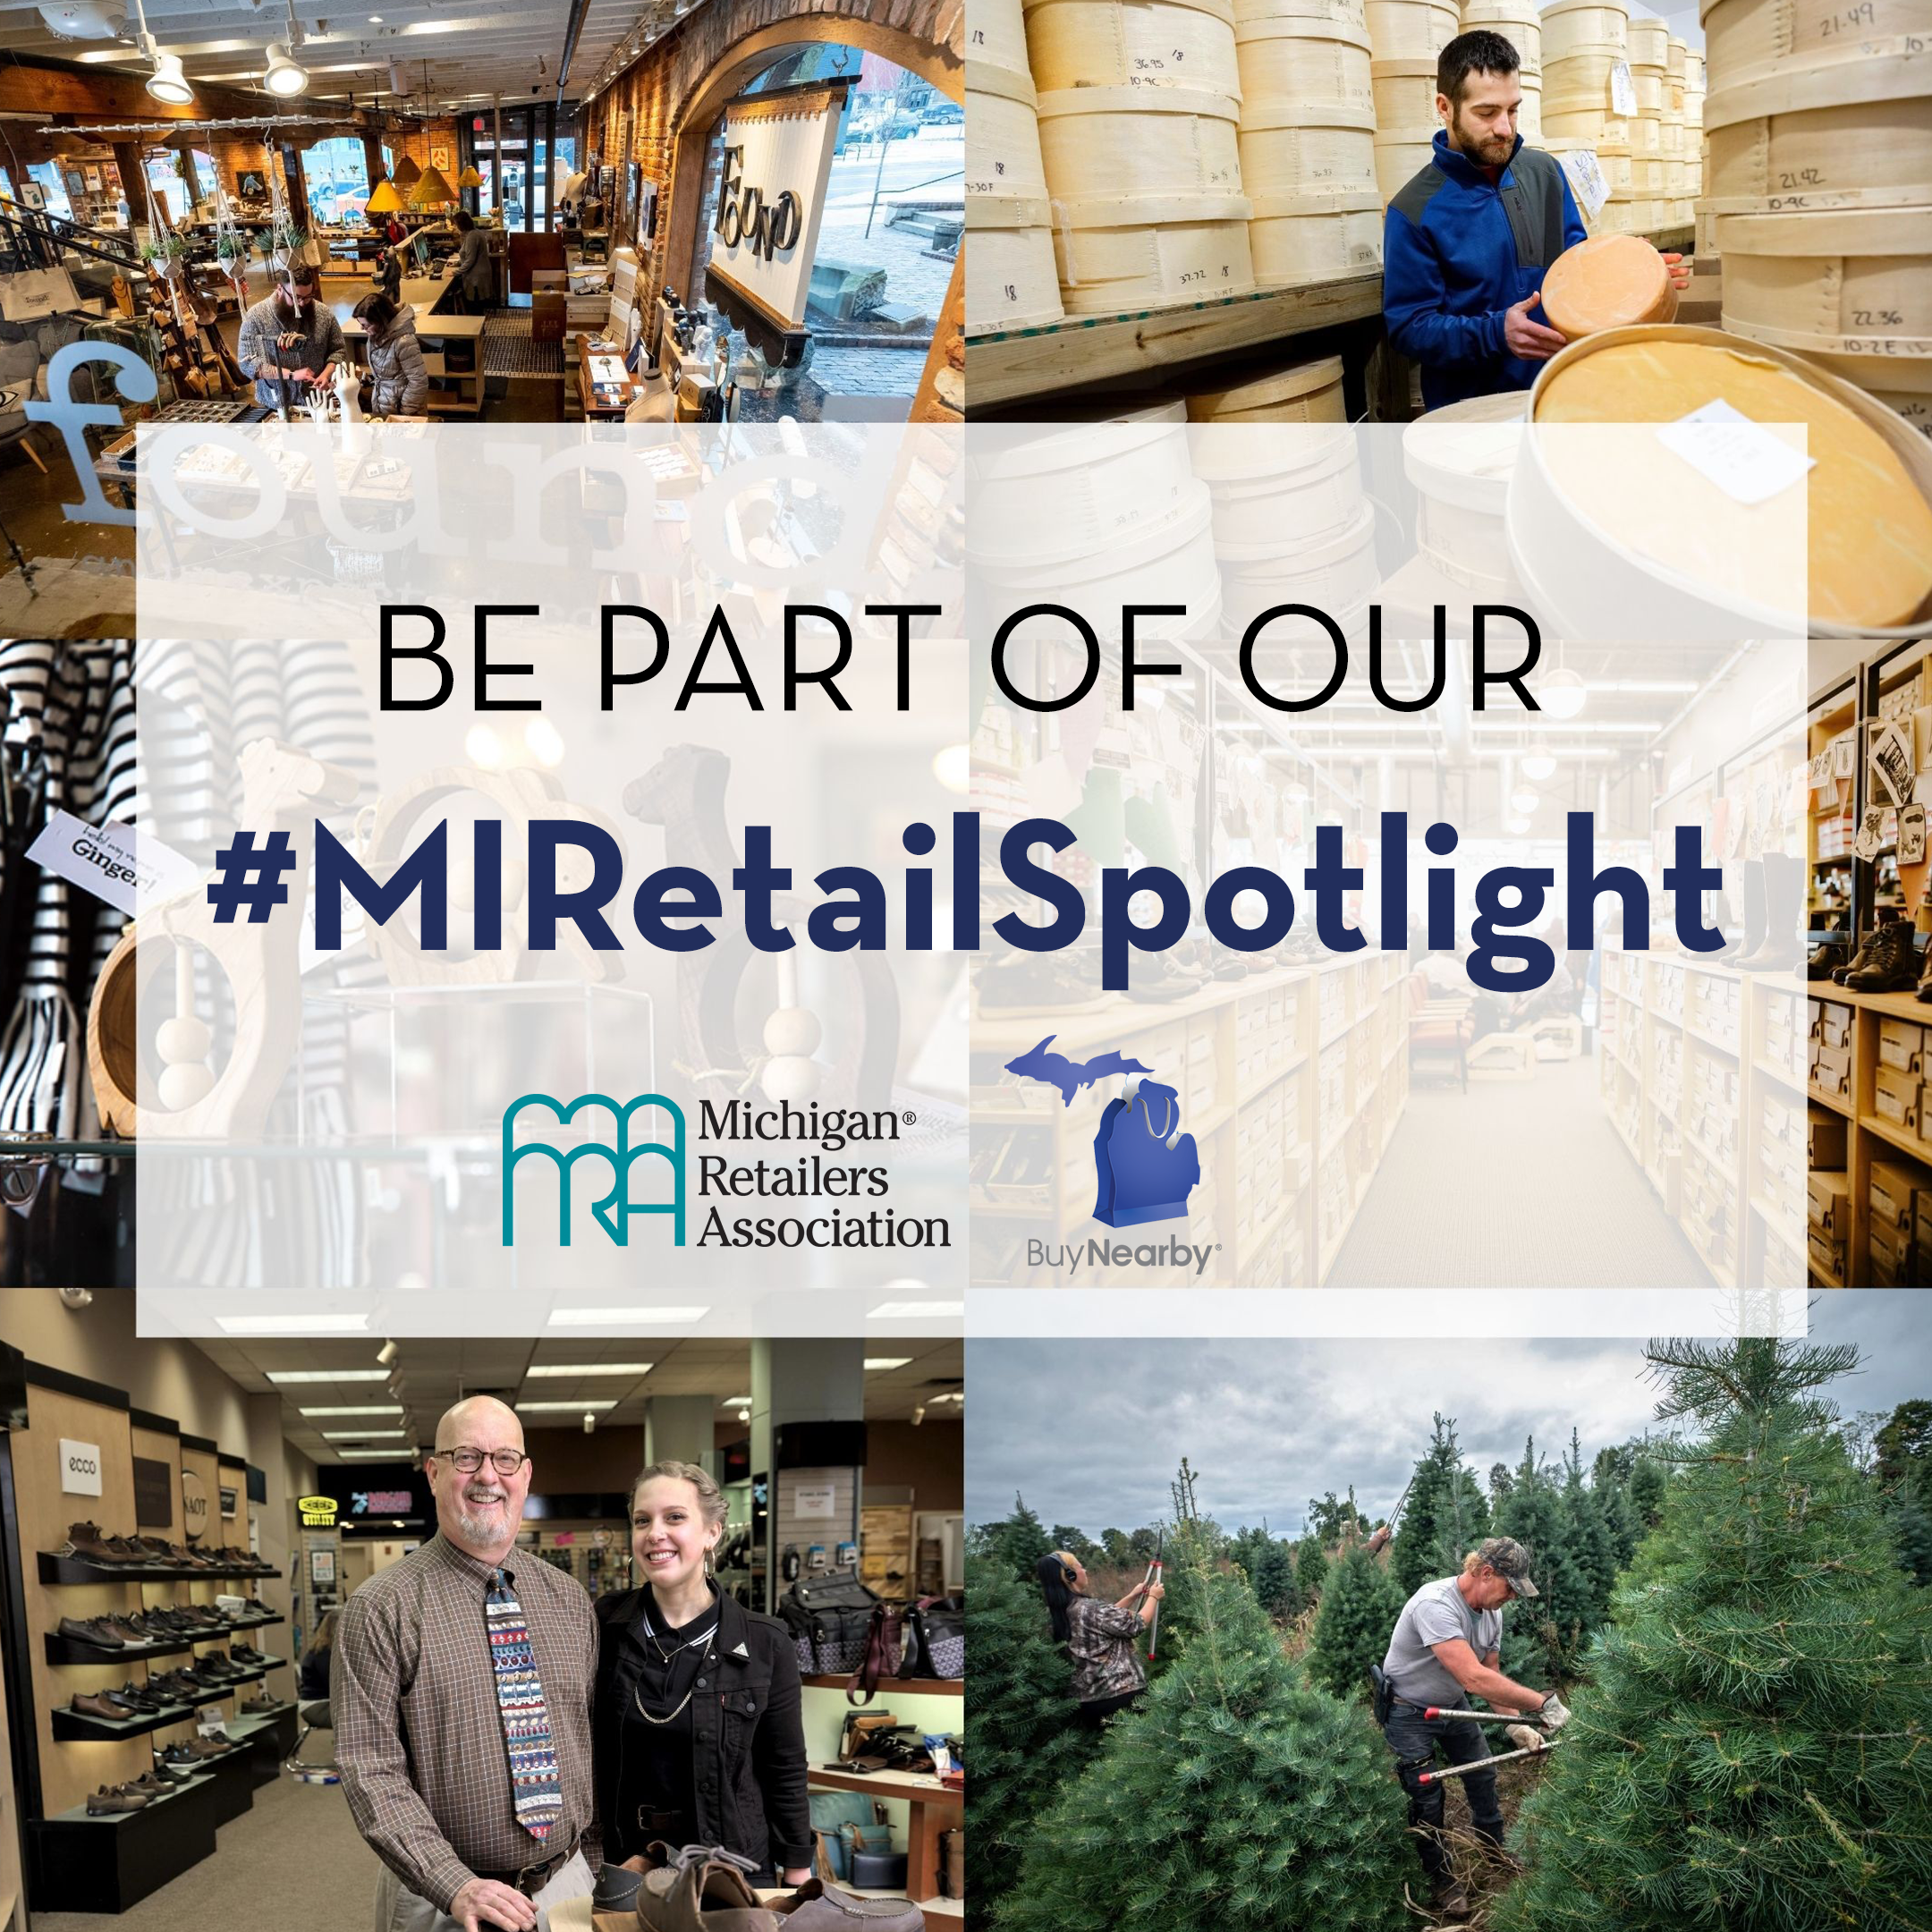 Be Part Of Our #MIRetailSpotlight